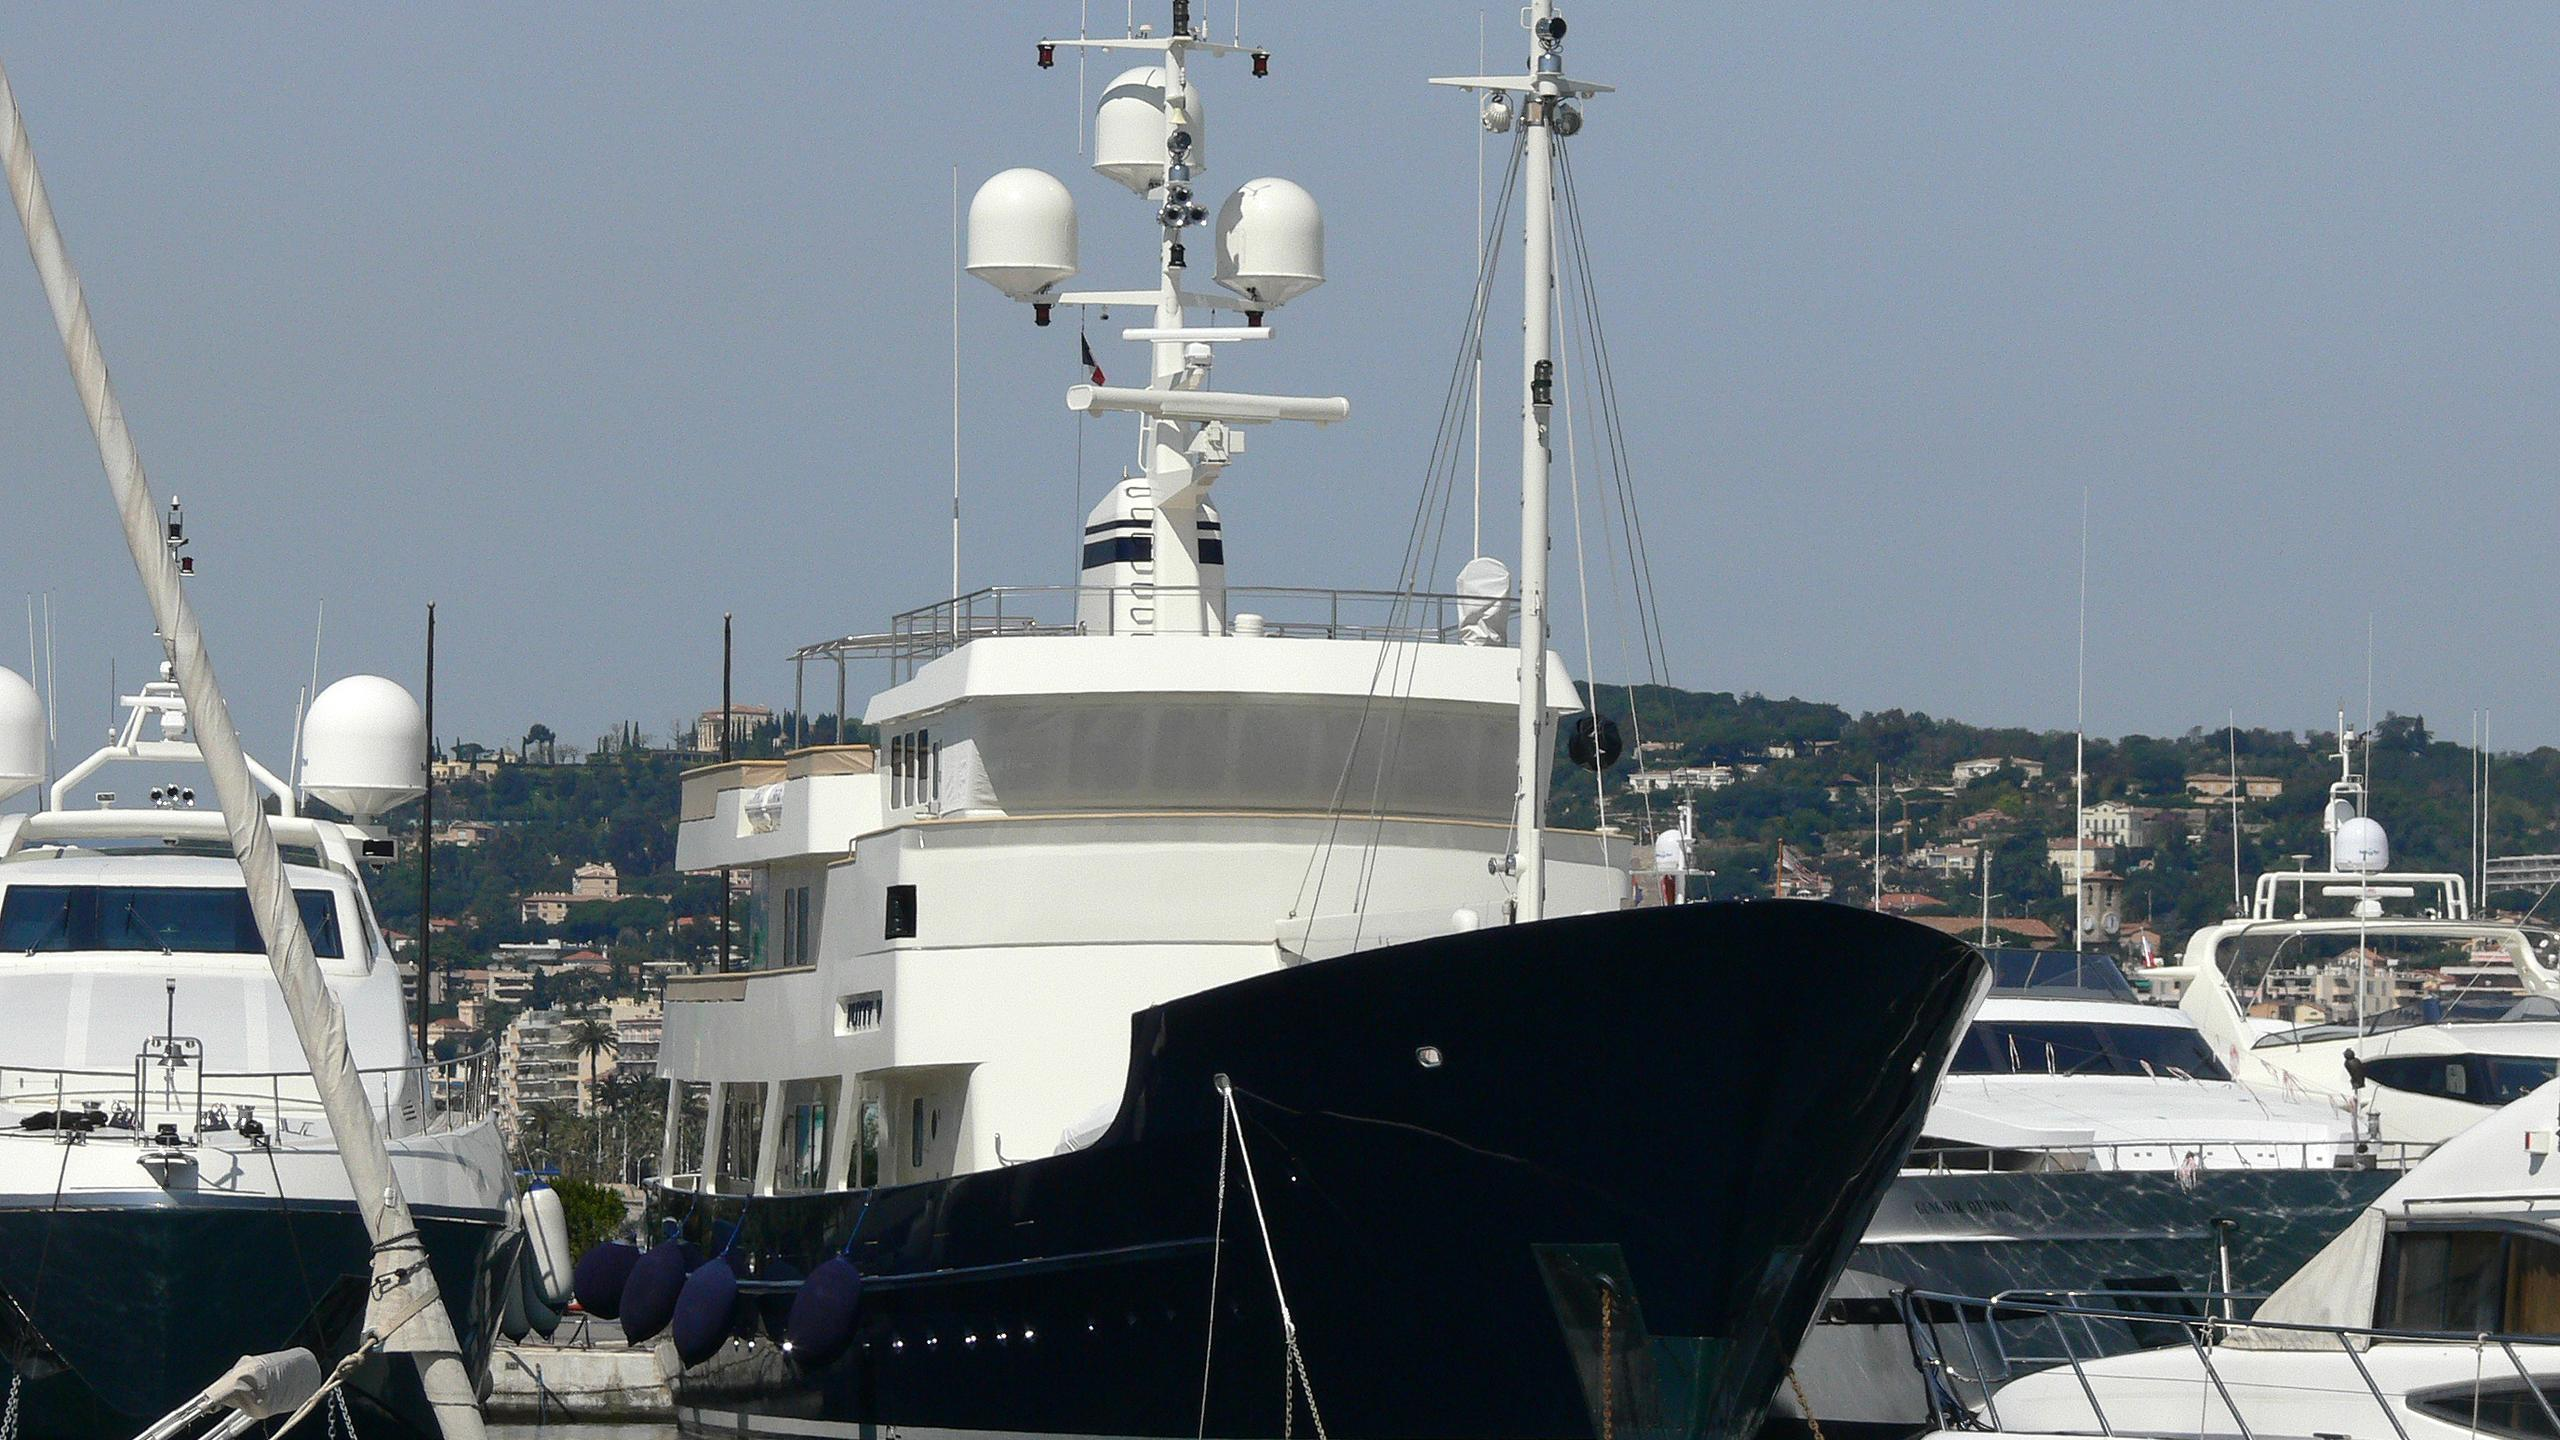 dione-sky-yacht-exterior